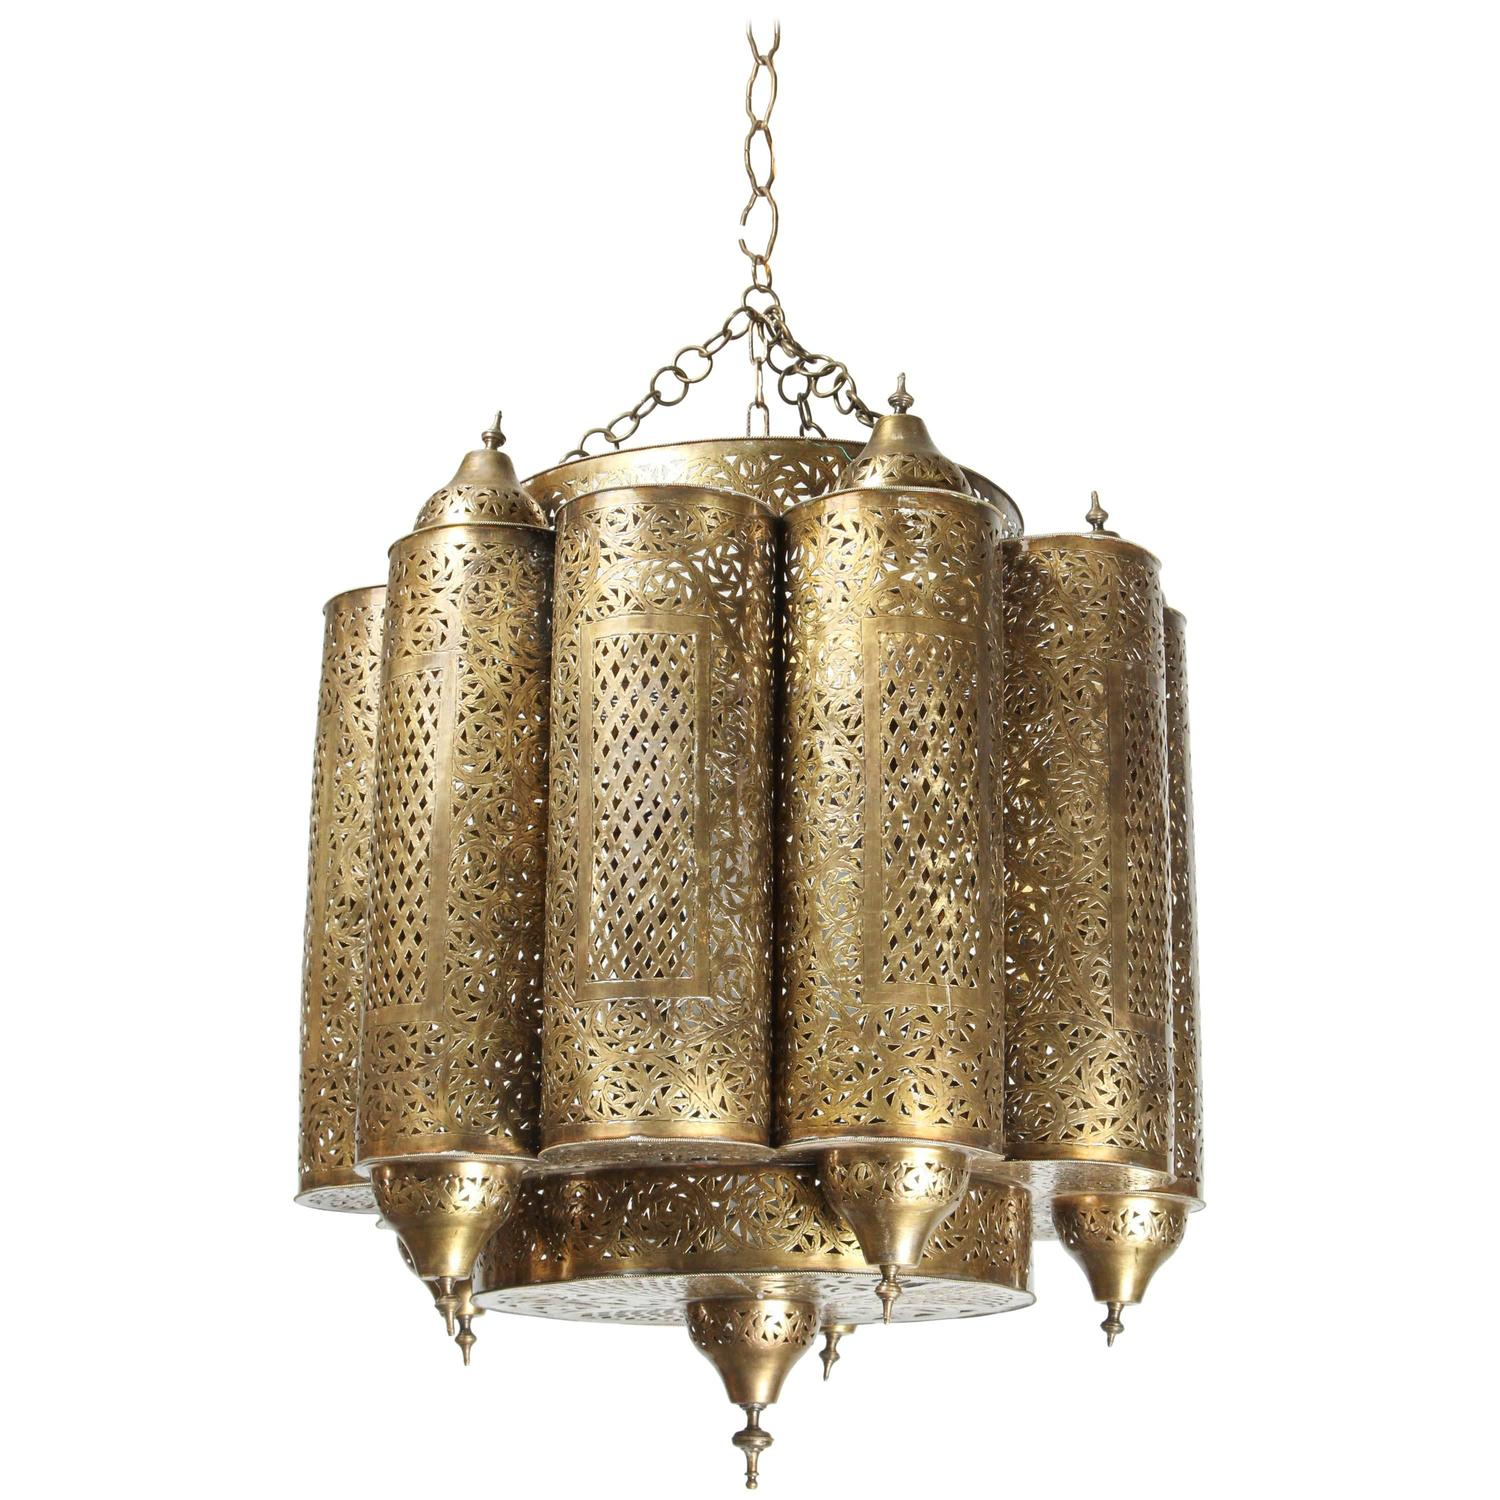 Brass moroccan mosque chandelier in the style of alberto pinto at brass moroccan mosque chandelier in the style of alberto pinto at 1stdibs arubaitofo Choice Image